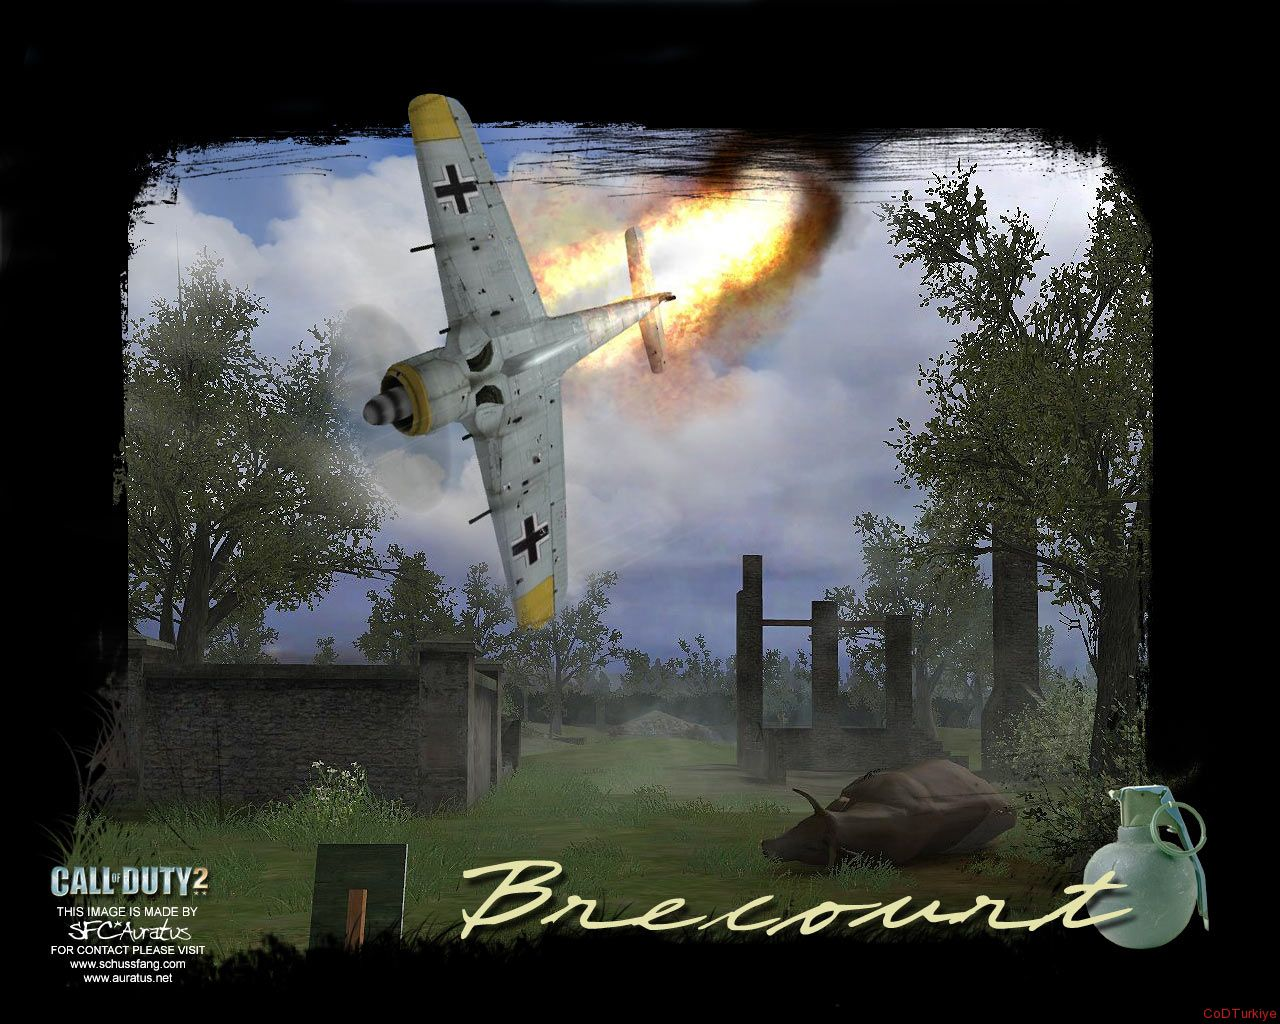 Call of Duty 2 Map Brecourt